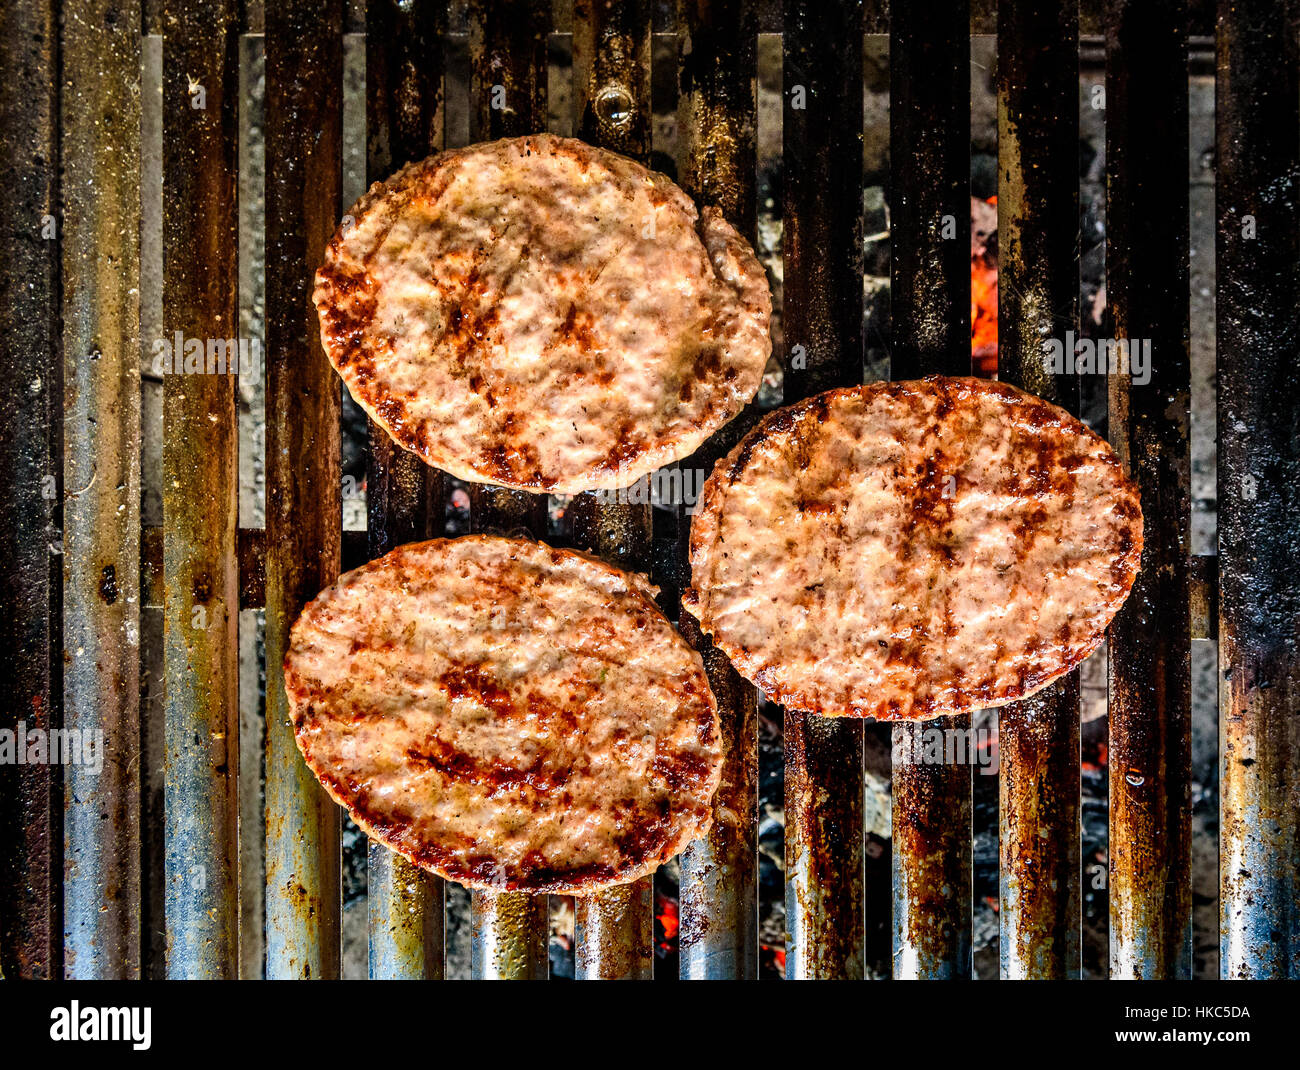 Grilling Burgers On Barbecue Bbq Grill On Hot Charcoal Homemade Stock Photo Alamy